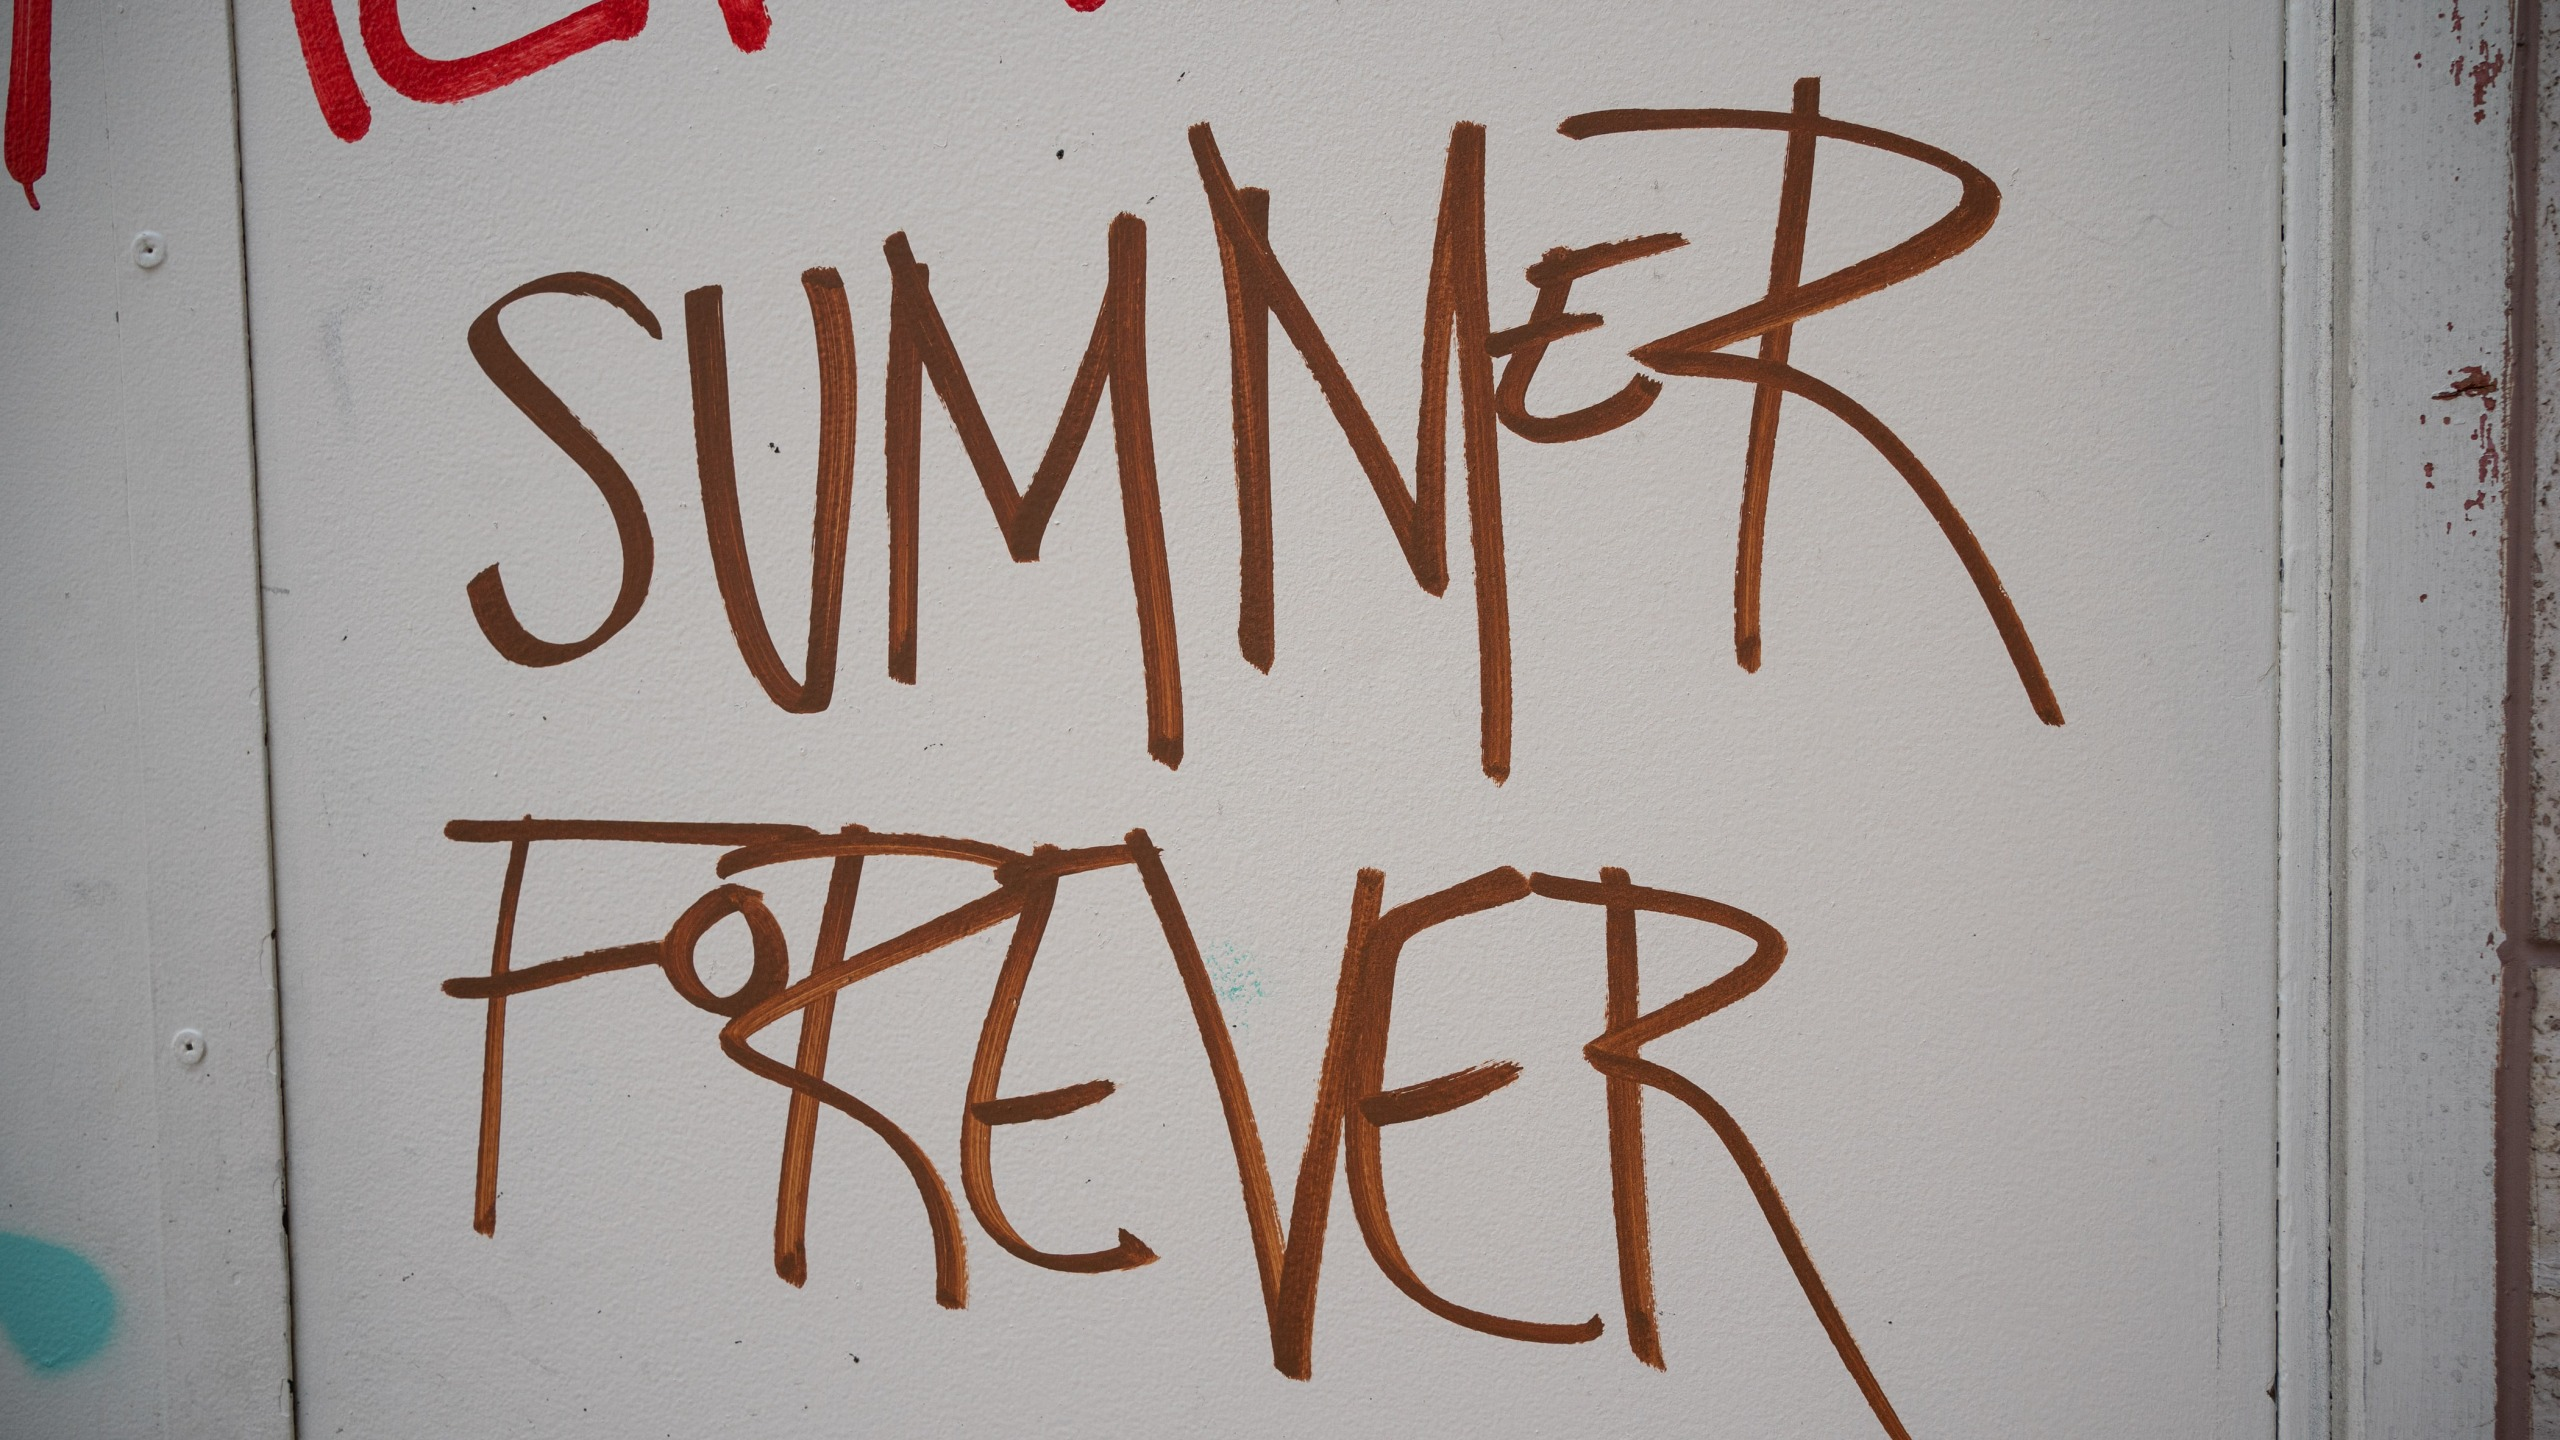 Graffiti is seen in Westlake Park to honor Summer Taylor on July 5, 2020, in Seattle, Washington. Taylor was fatally struck by a car when a man drove into protesters early July 4 morning during a protest on Interstate 5, injuring another protester, Diaz Love, who was left in serious condition. (David Ryder/Getty Images)